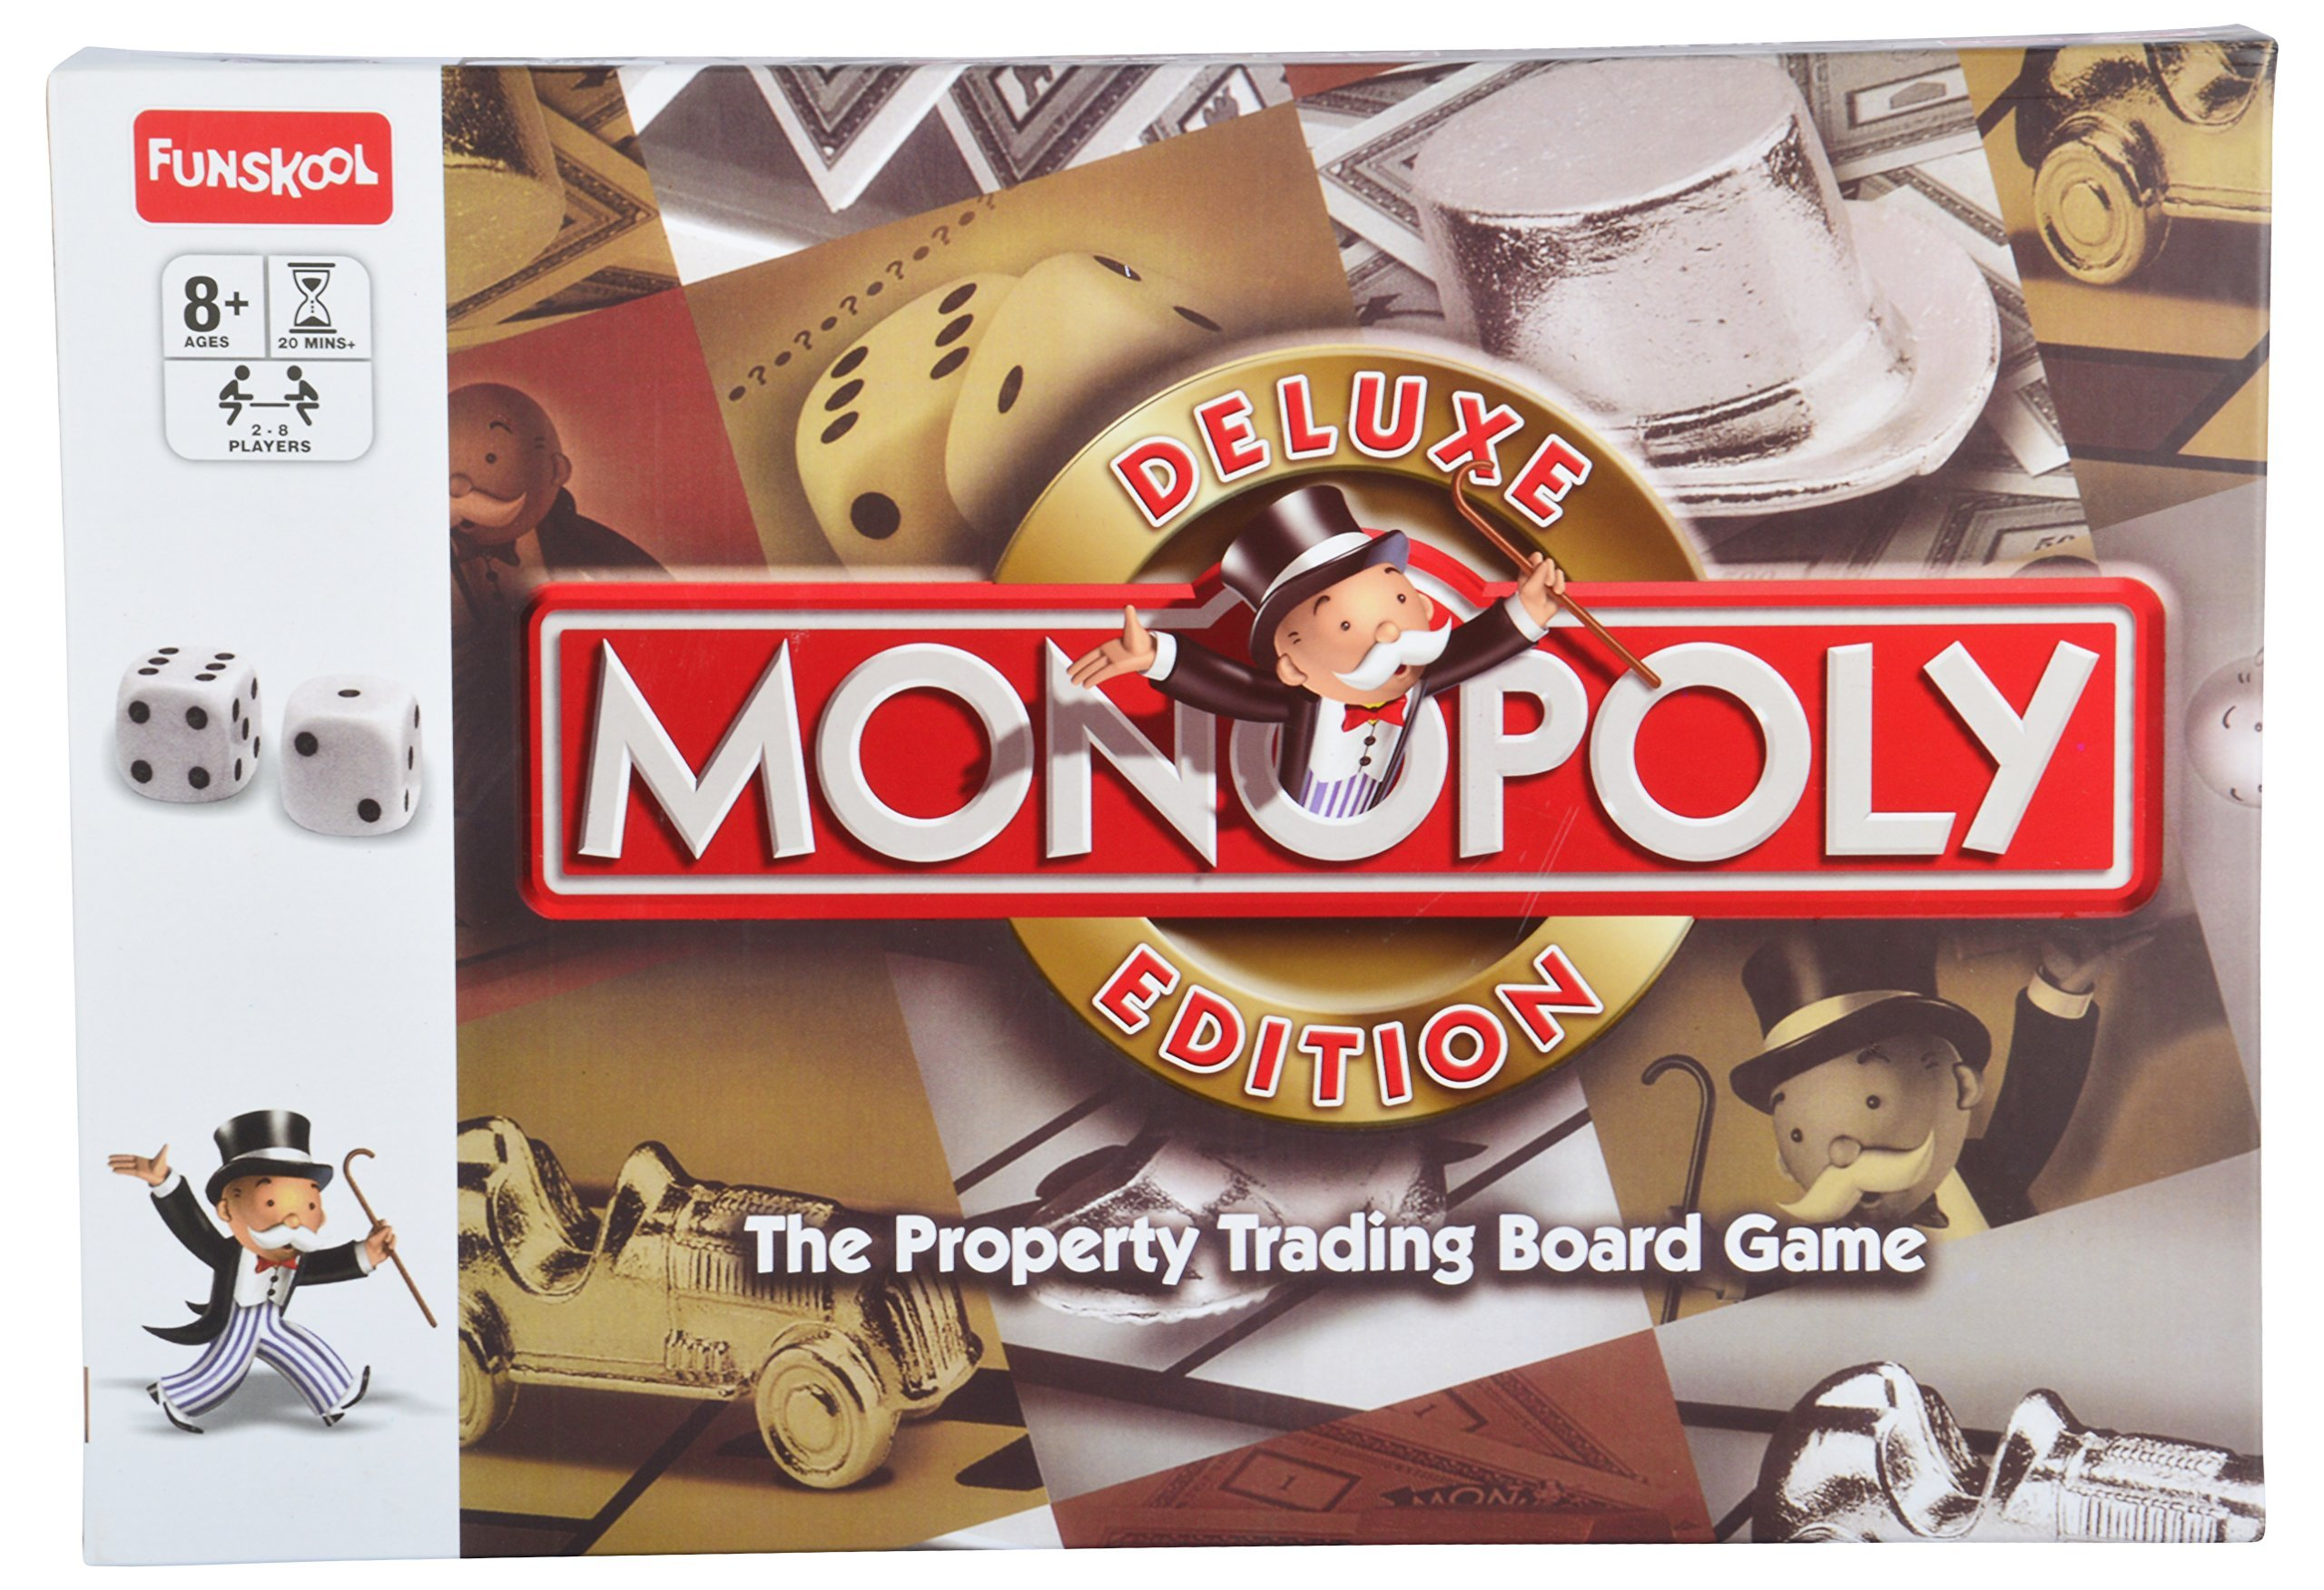 Funskool Monopoly Deluxe product image